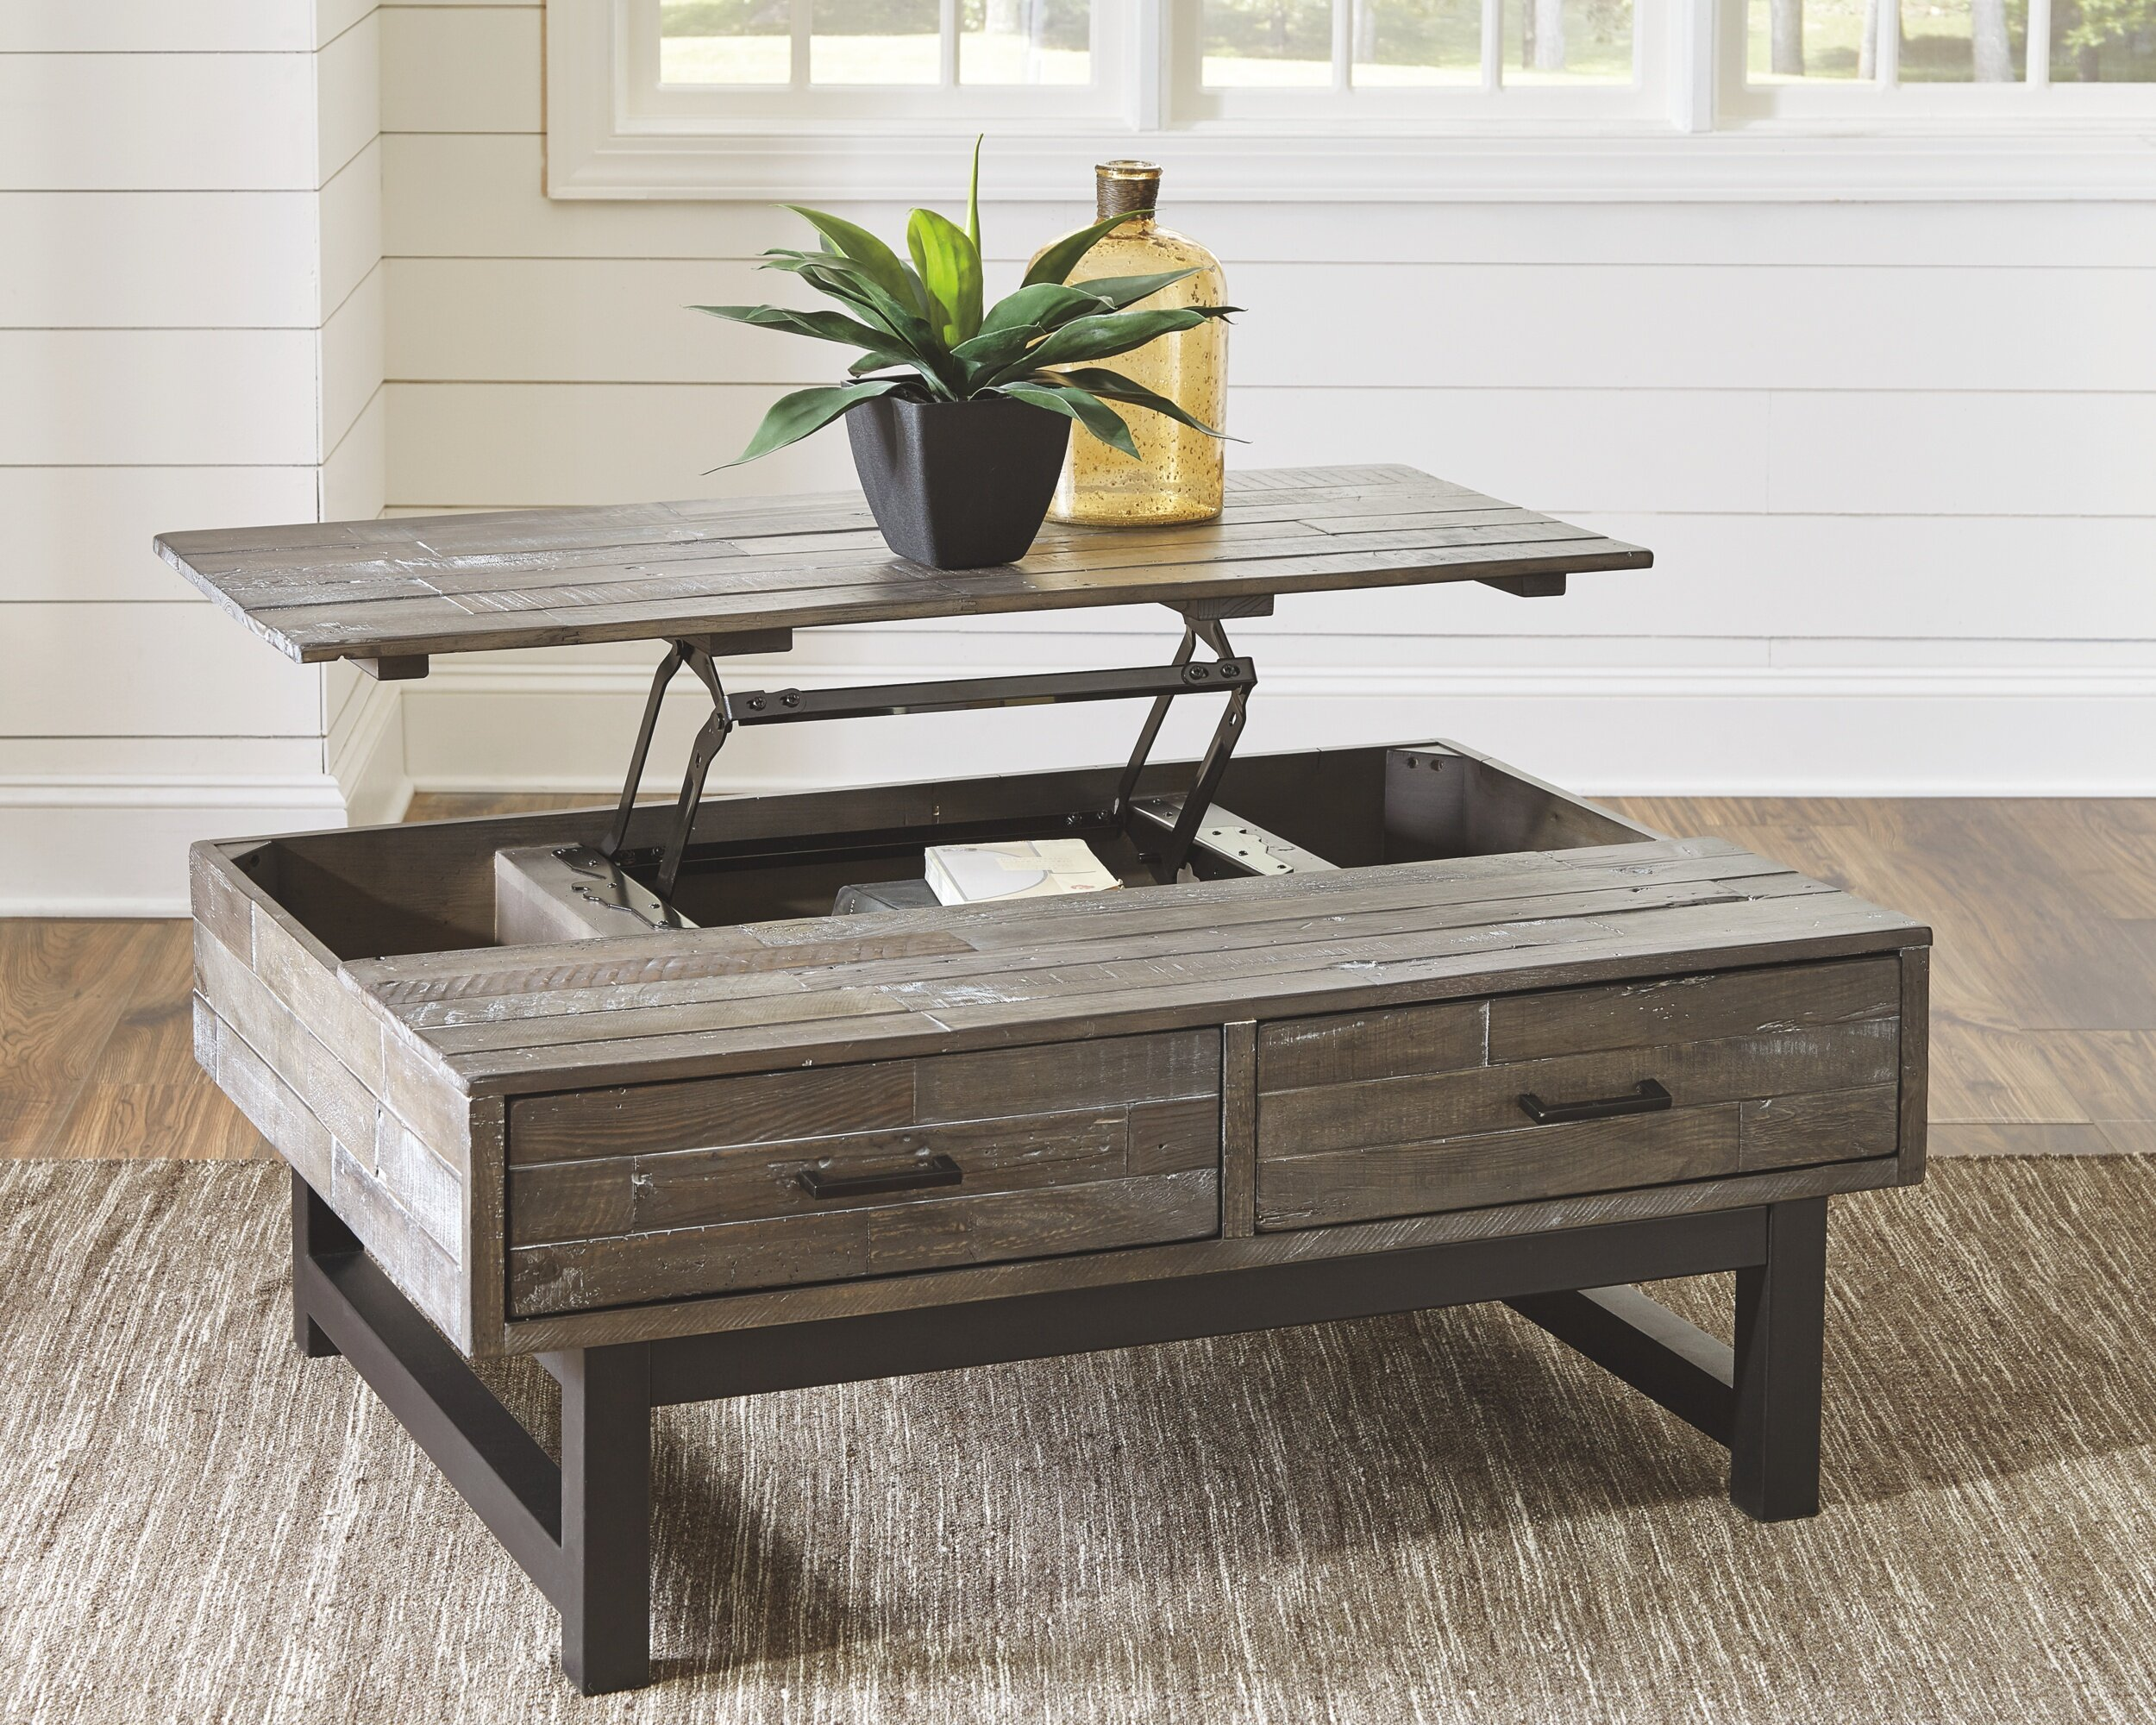 Lift Top Coffee Table Storage 11